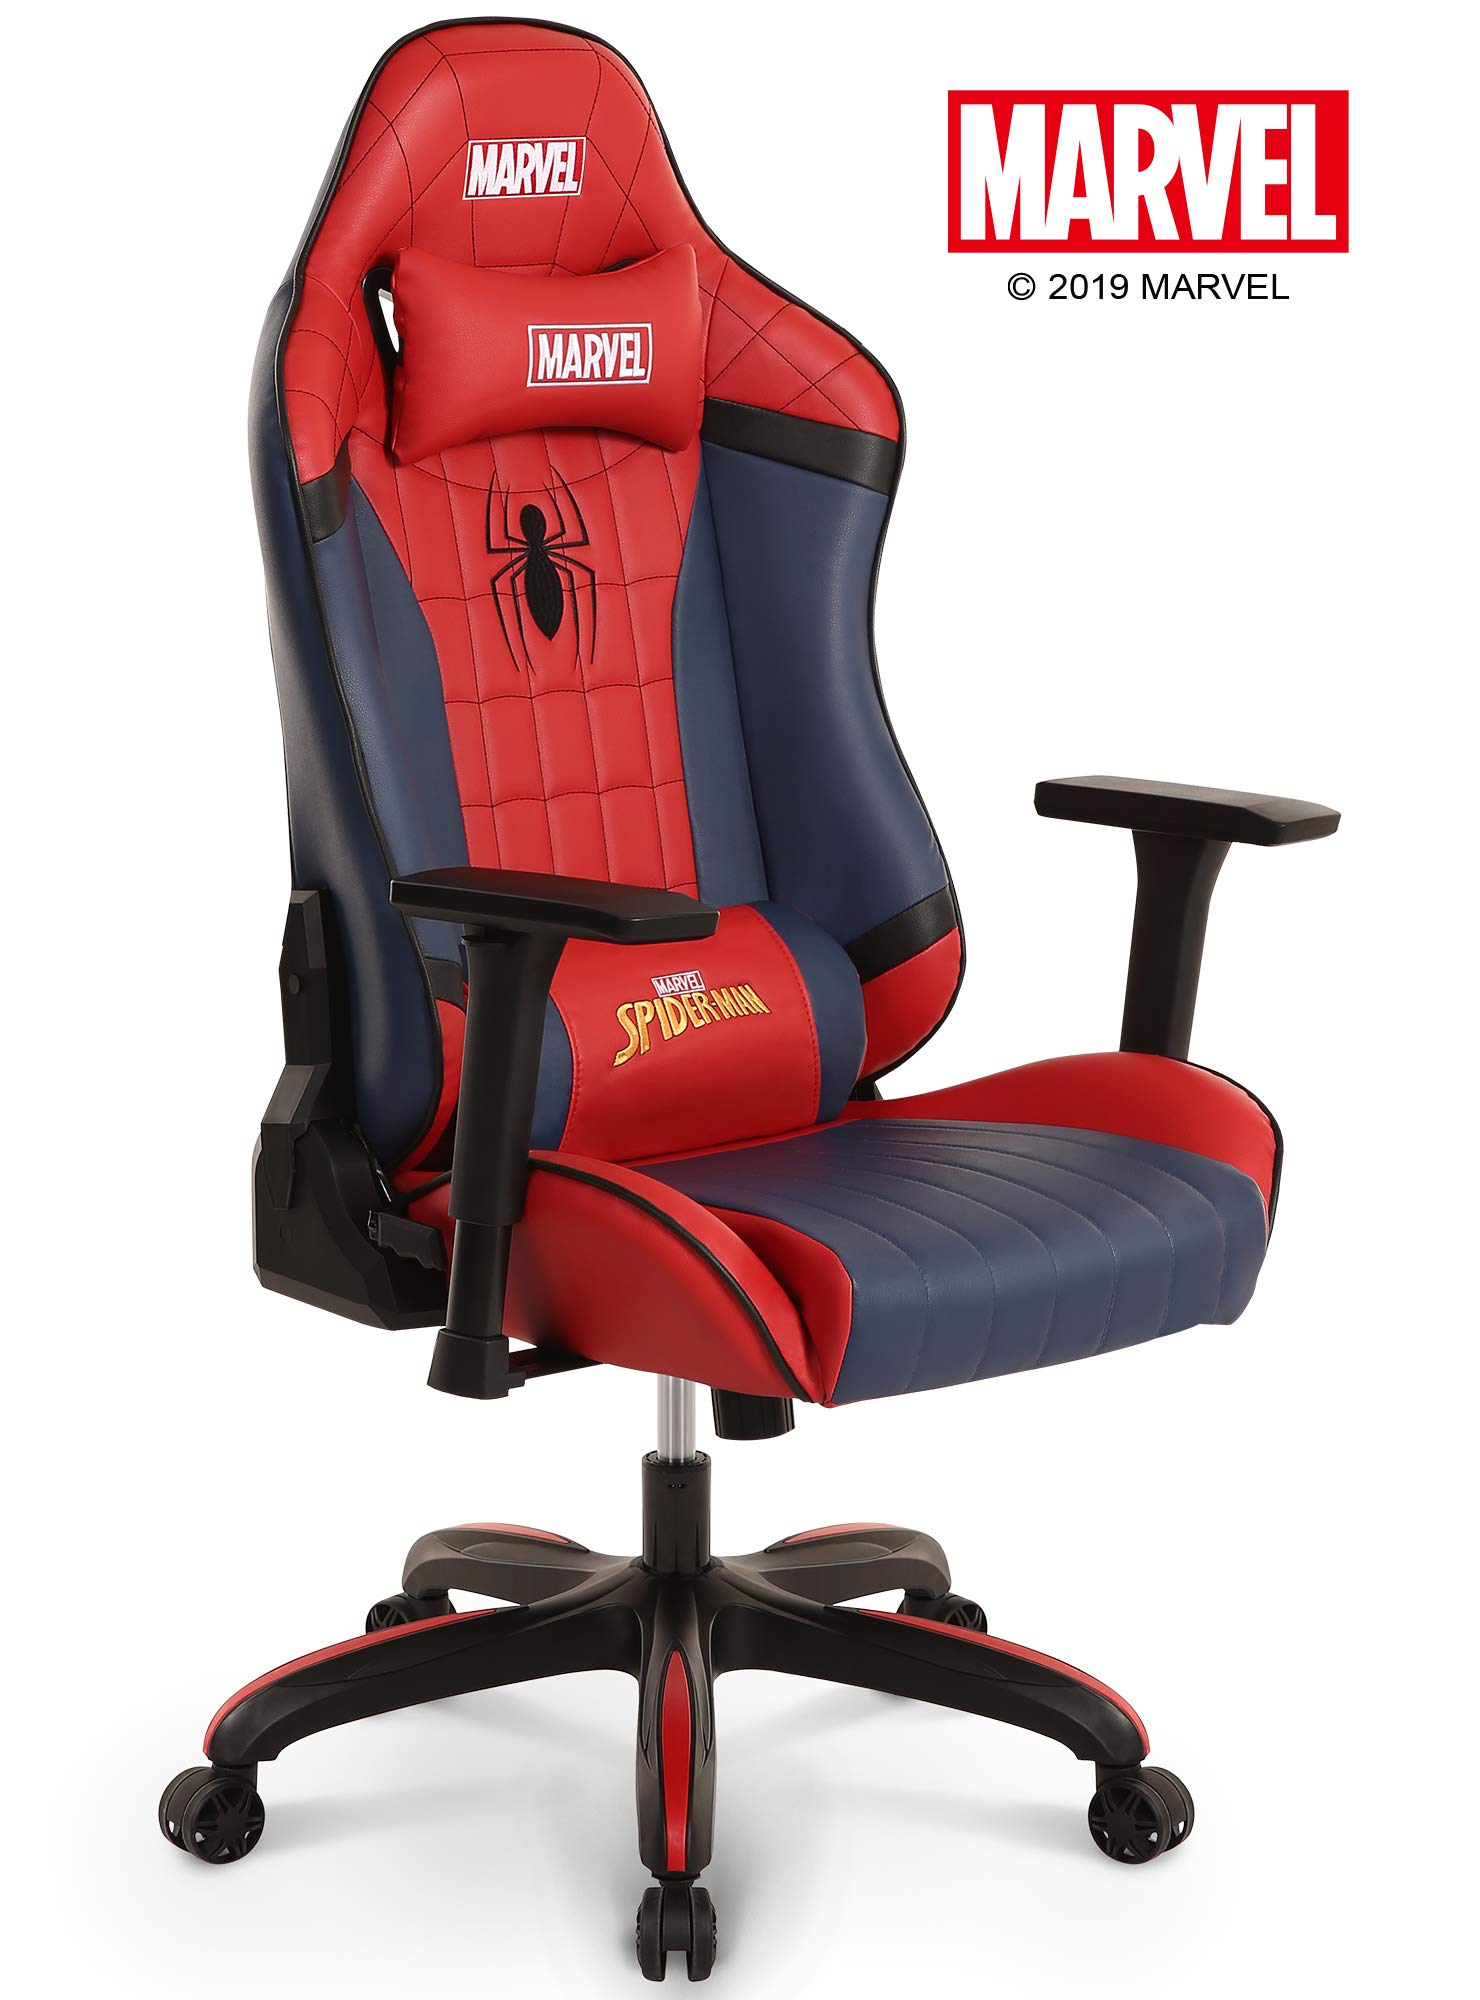 Marvel Avengers Gaming High End Ergonomic Neck Lumbar Support Armrests Reclining and Tilting Computer Desk Office Executive Leather Racing by Neo Chair